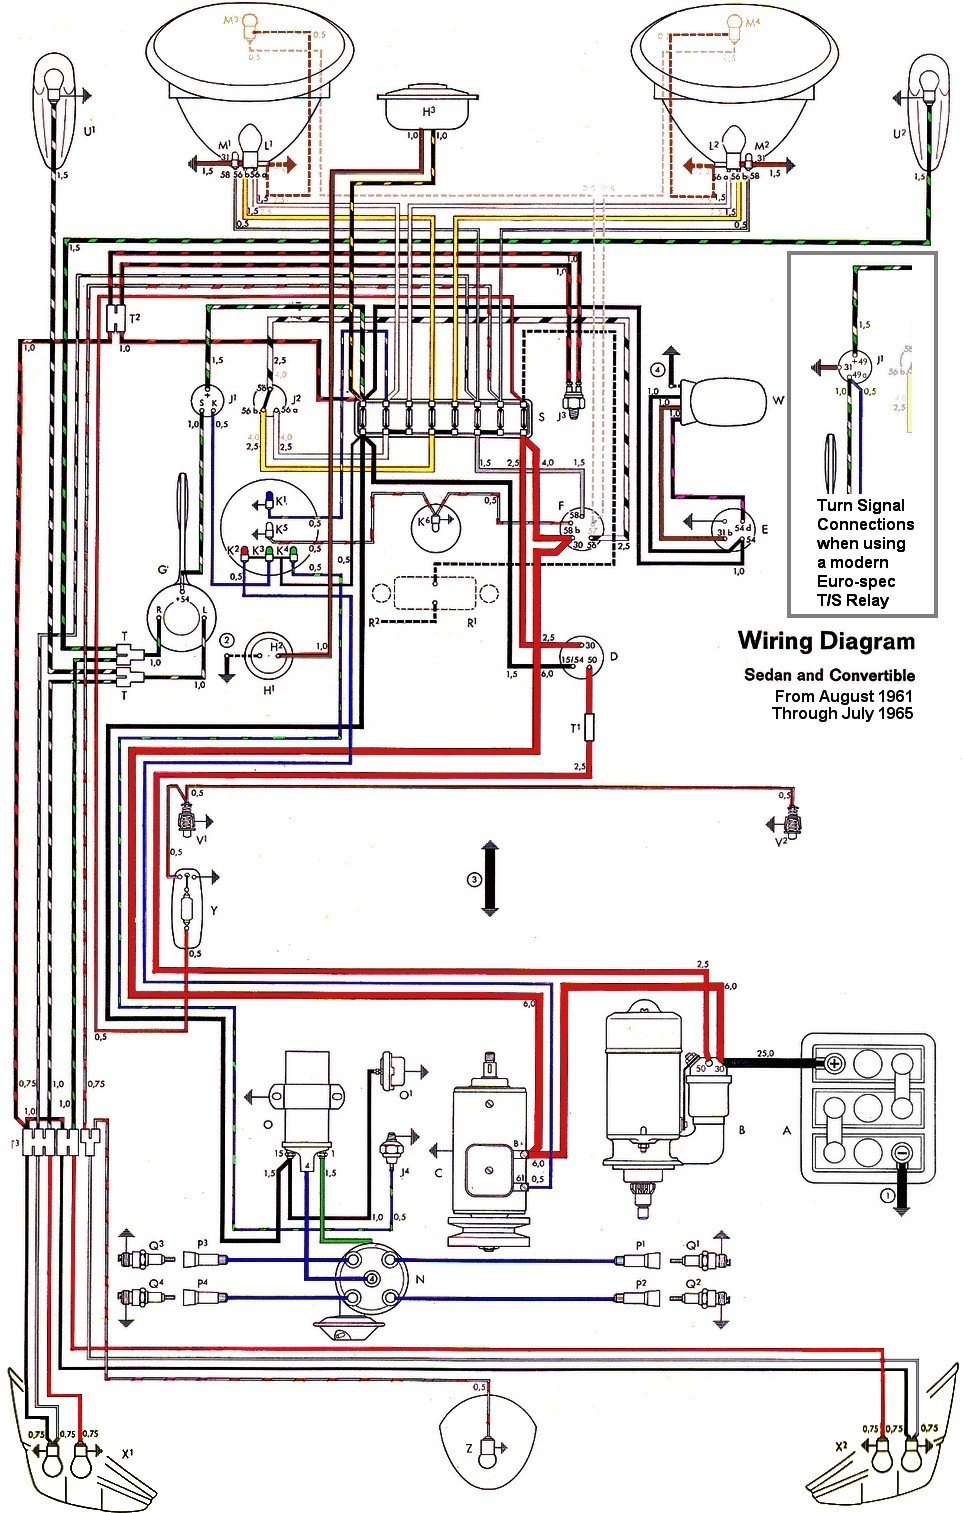 bug_62 65withinset vw wiring harness diagram cj7 wiring harness diagram \u2022 wiring vw bug painless wiring harness at mifinder.co